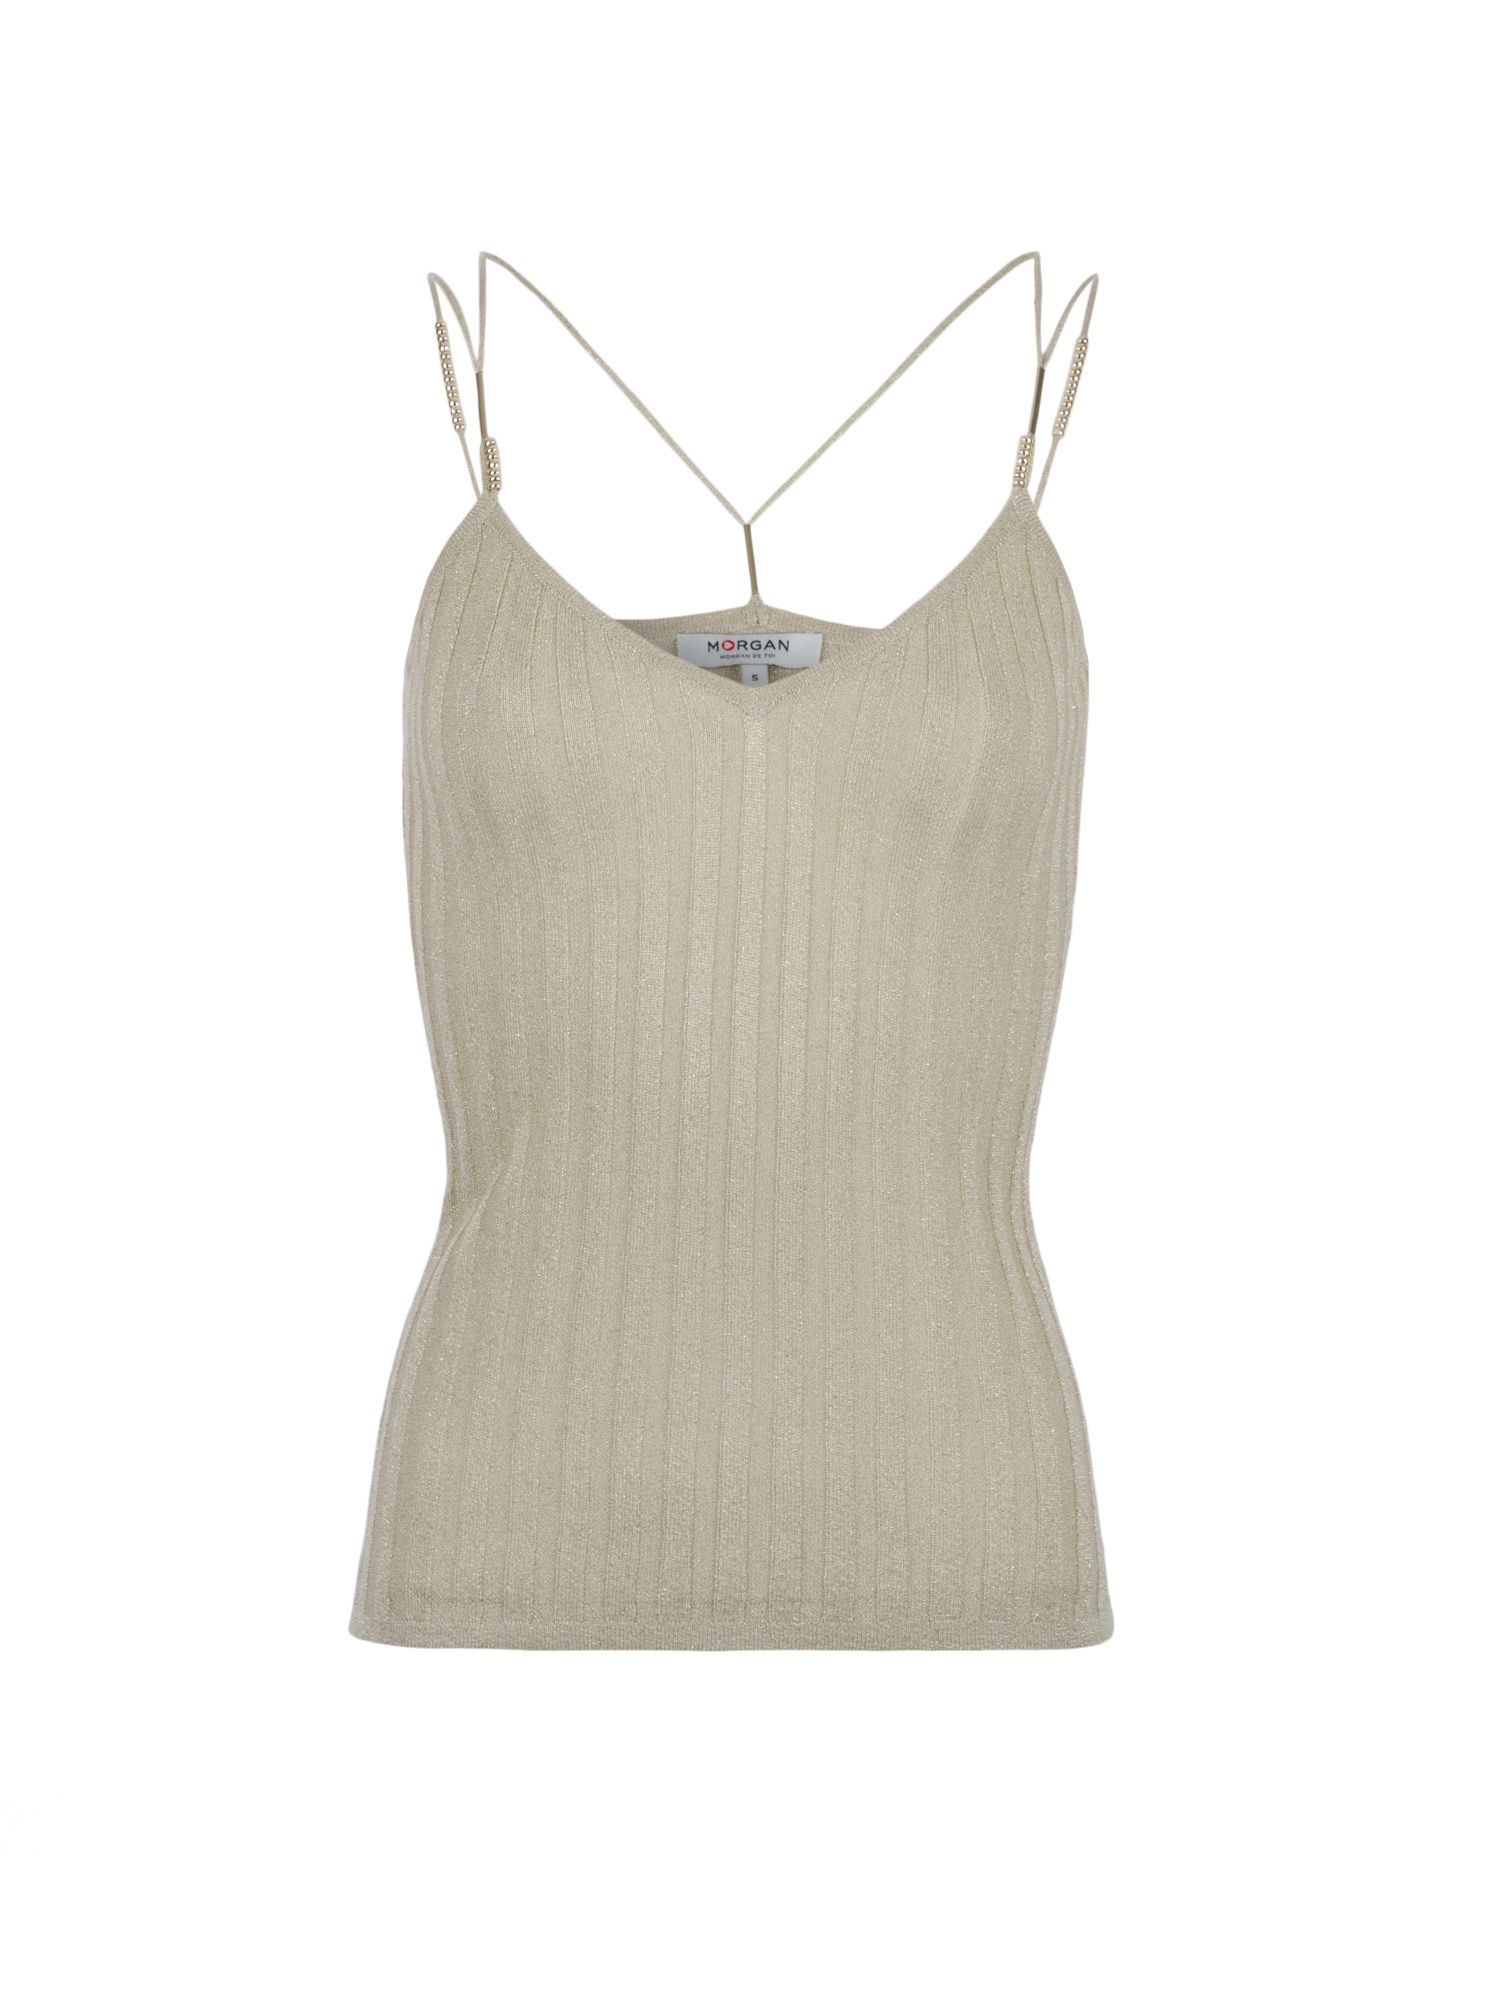 Morgan Beads Embellished Lurex Knit Tank Top Beige